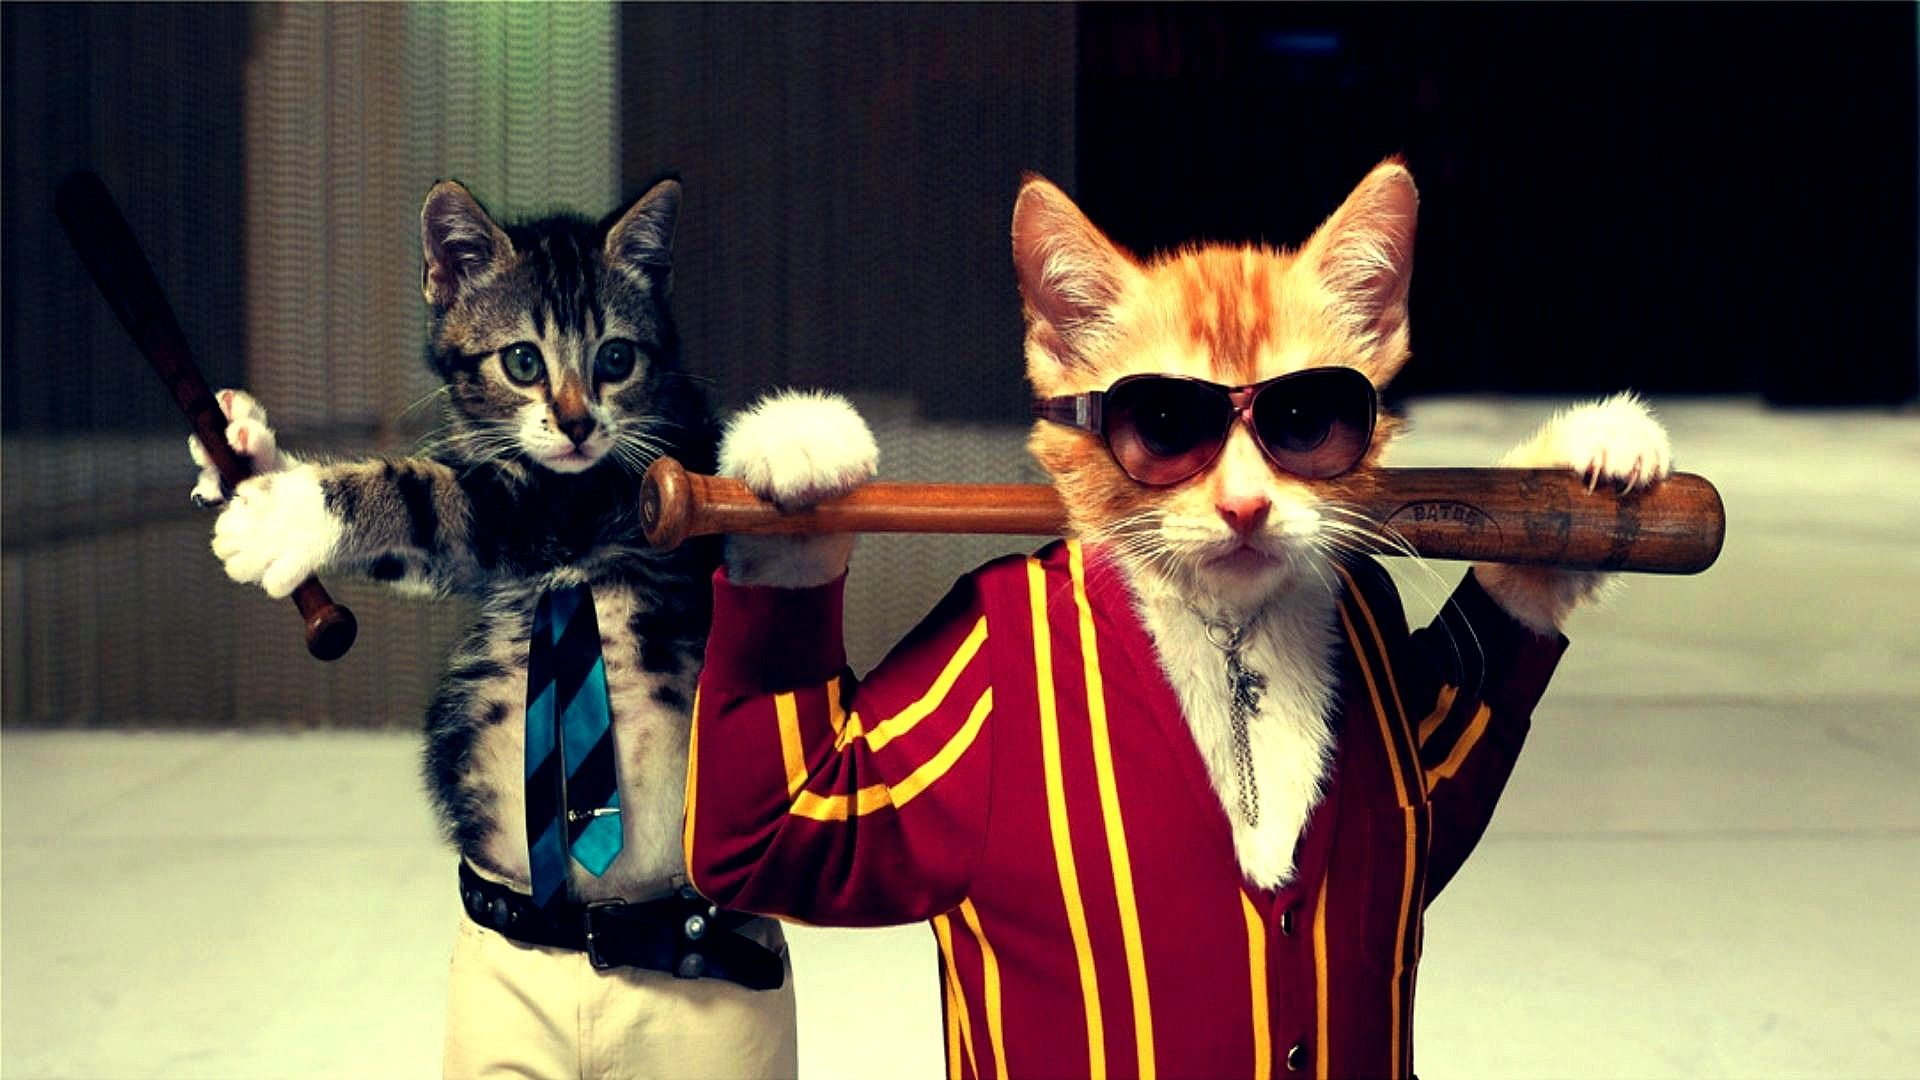 1920x1080 Thug Cats. | Geek | Funny cat wallpaper, Funny animals ...